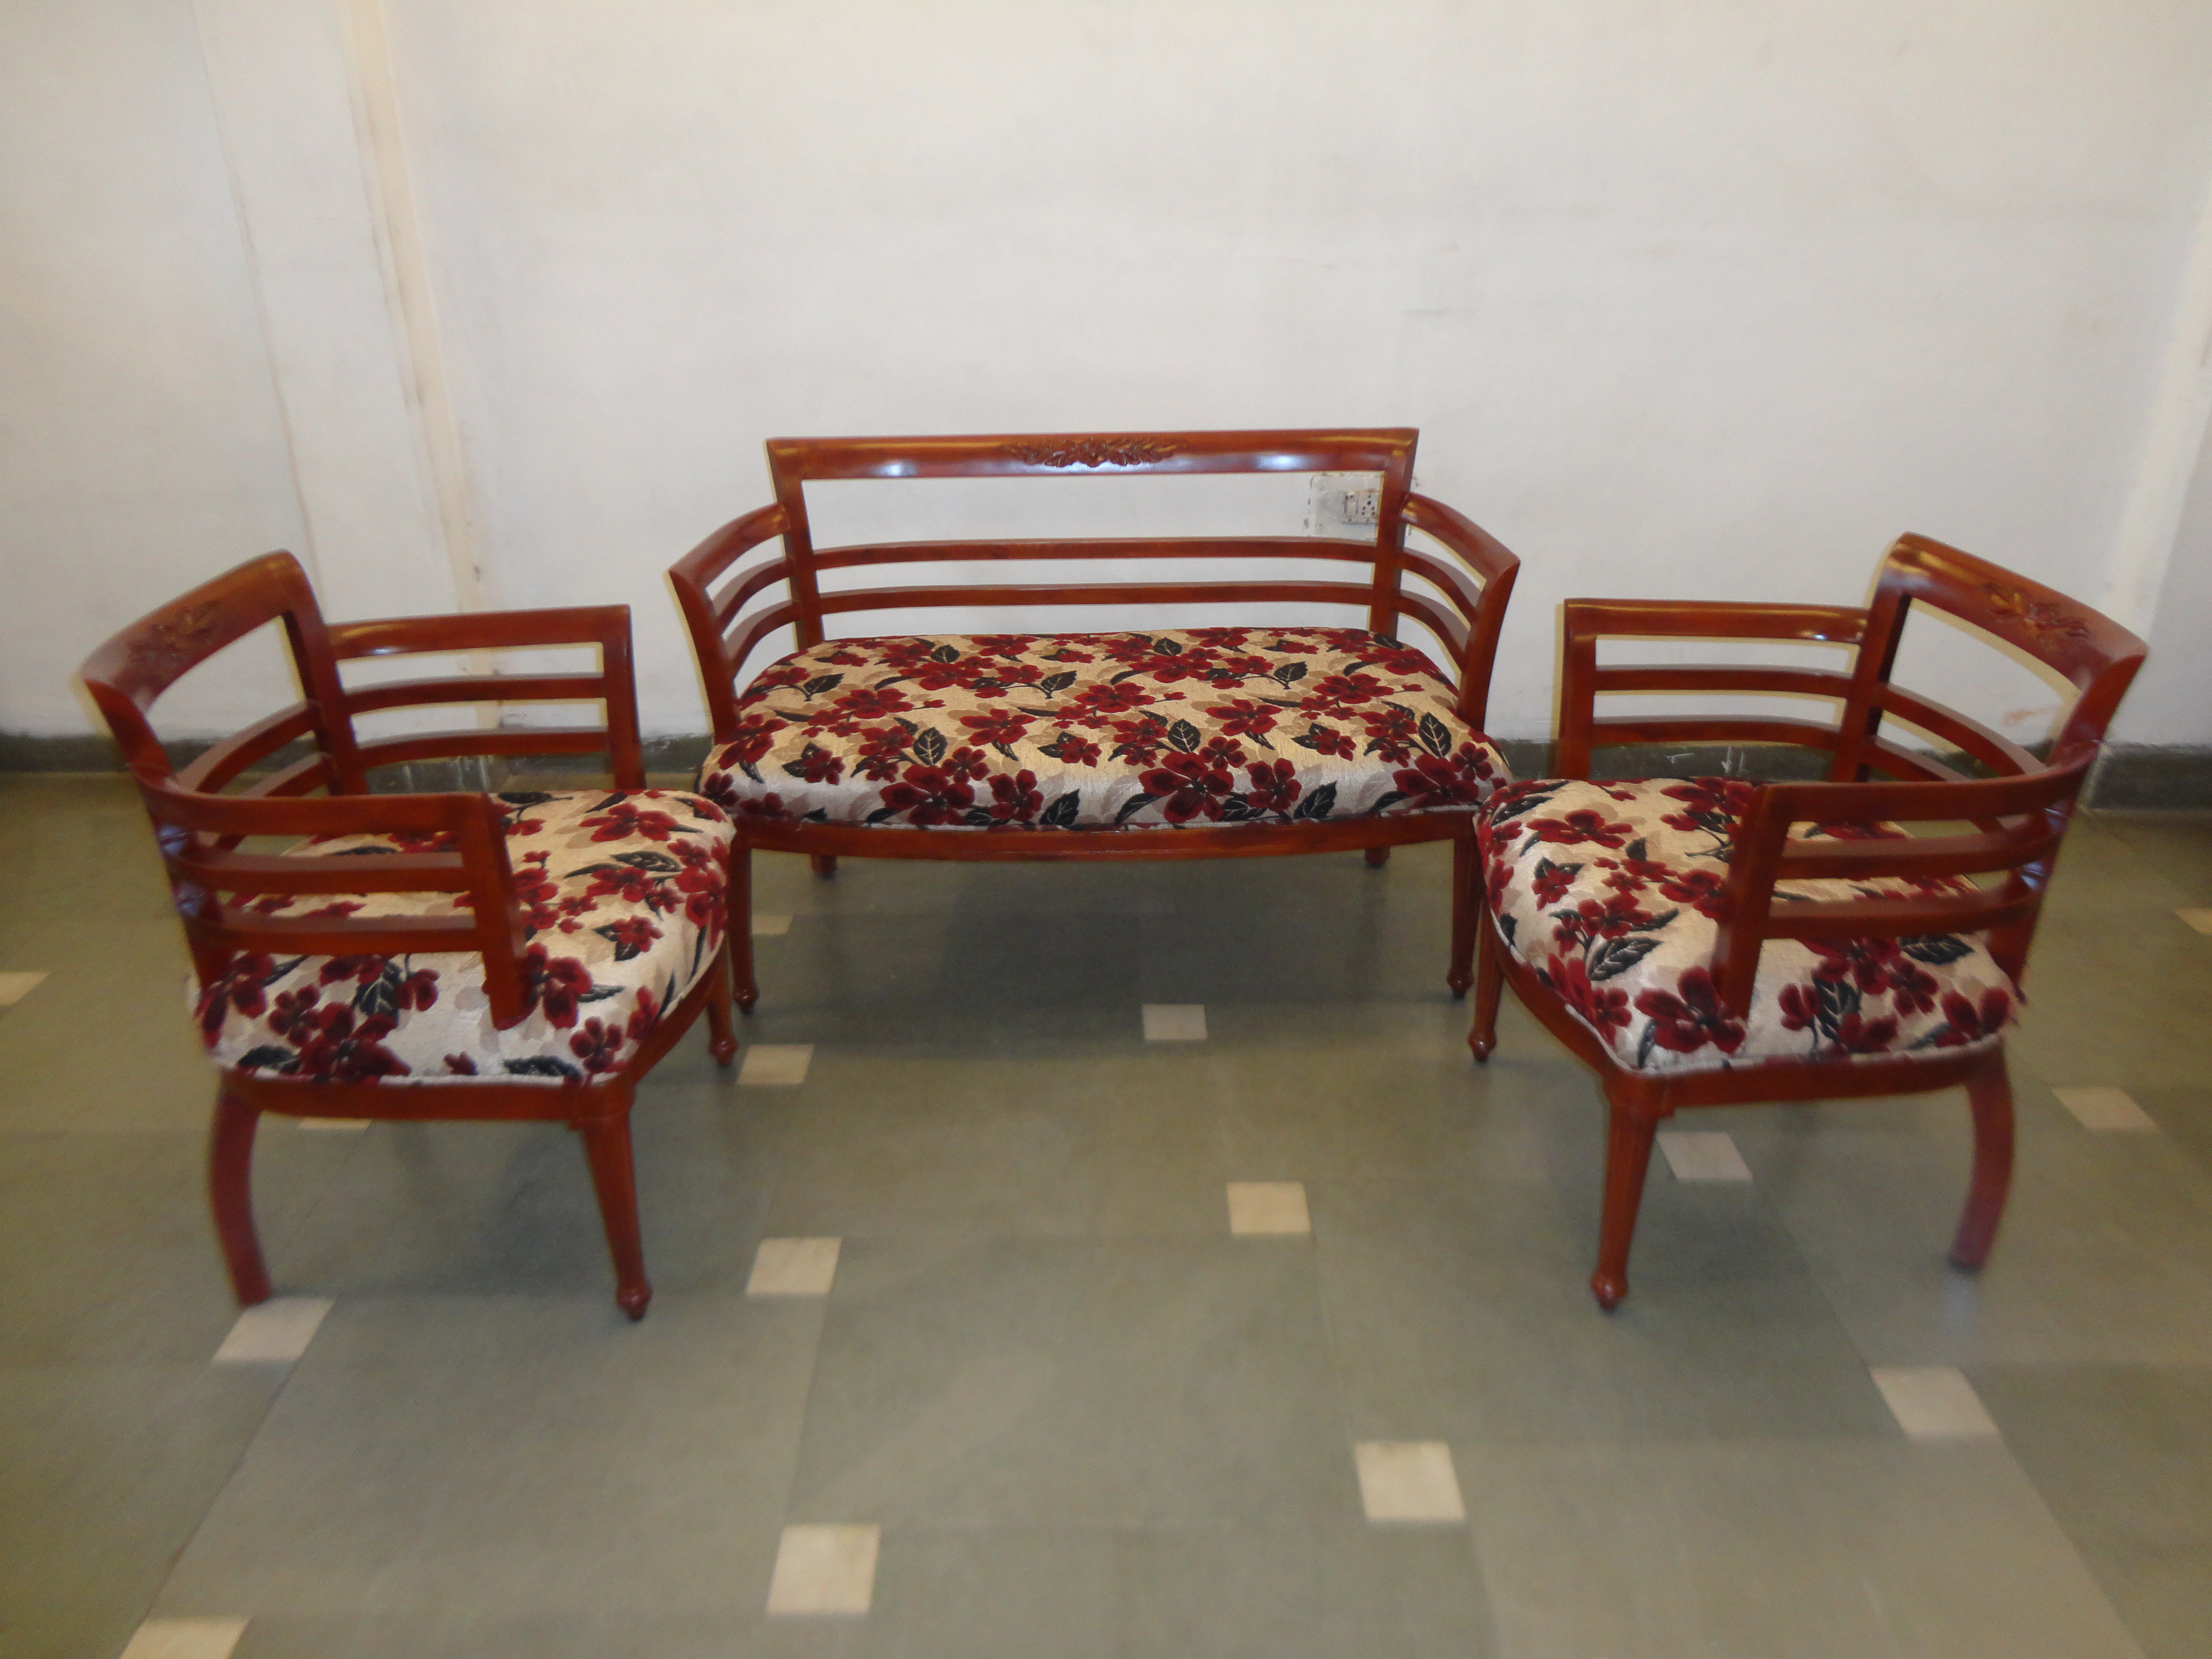 Tokri Sofa Sets View Specifications & Details of Designer Sofa